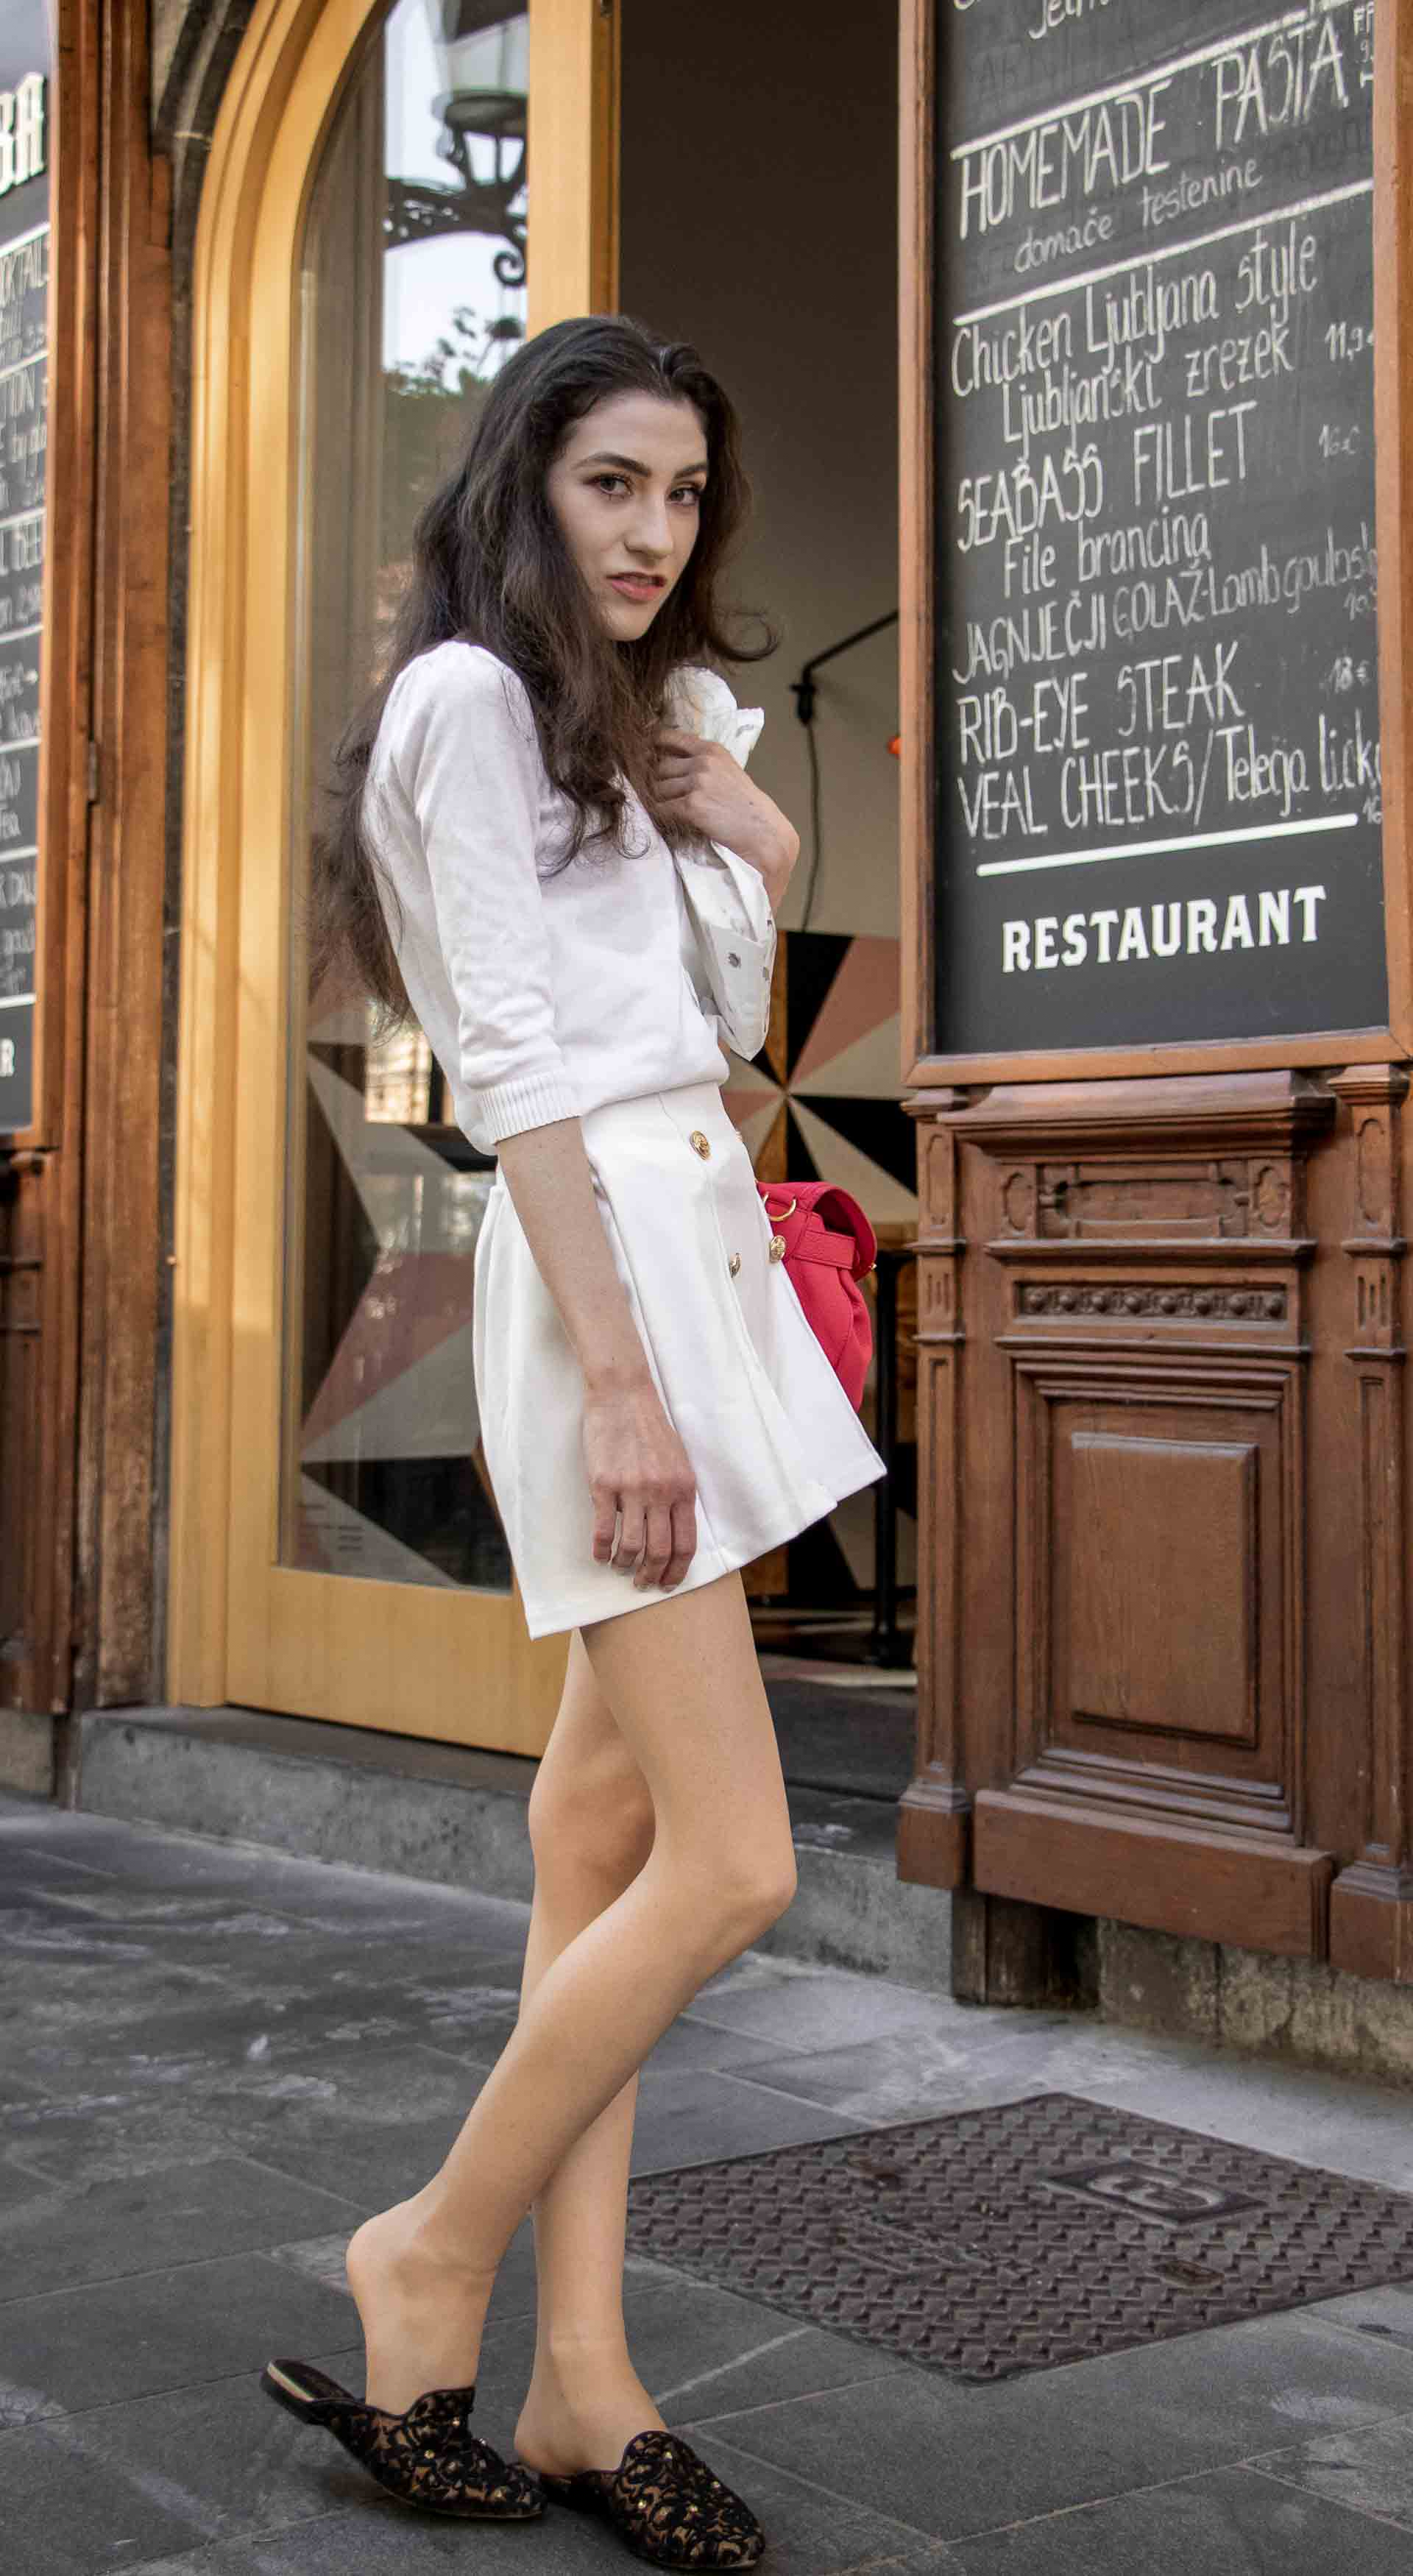 Slovenska modna blogerka Veronika Lipar of Brunette from Wall wearing all in white outfit, a white sweater, white tailored shorts, black flat slipper mules, pink top handle bag, a paper bag on the street in Ljubljana